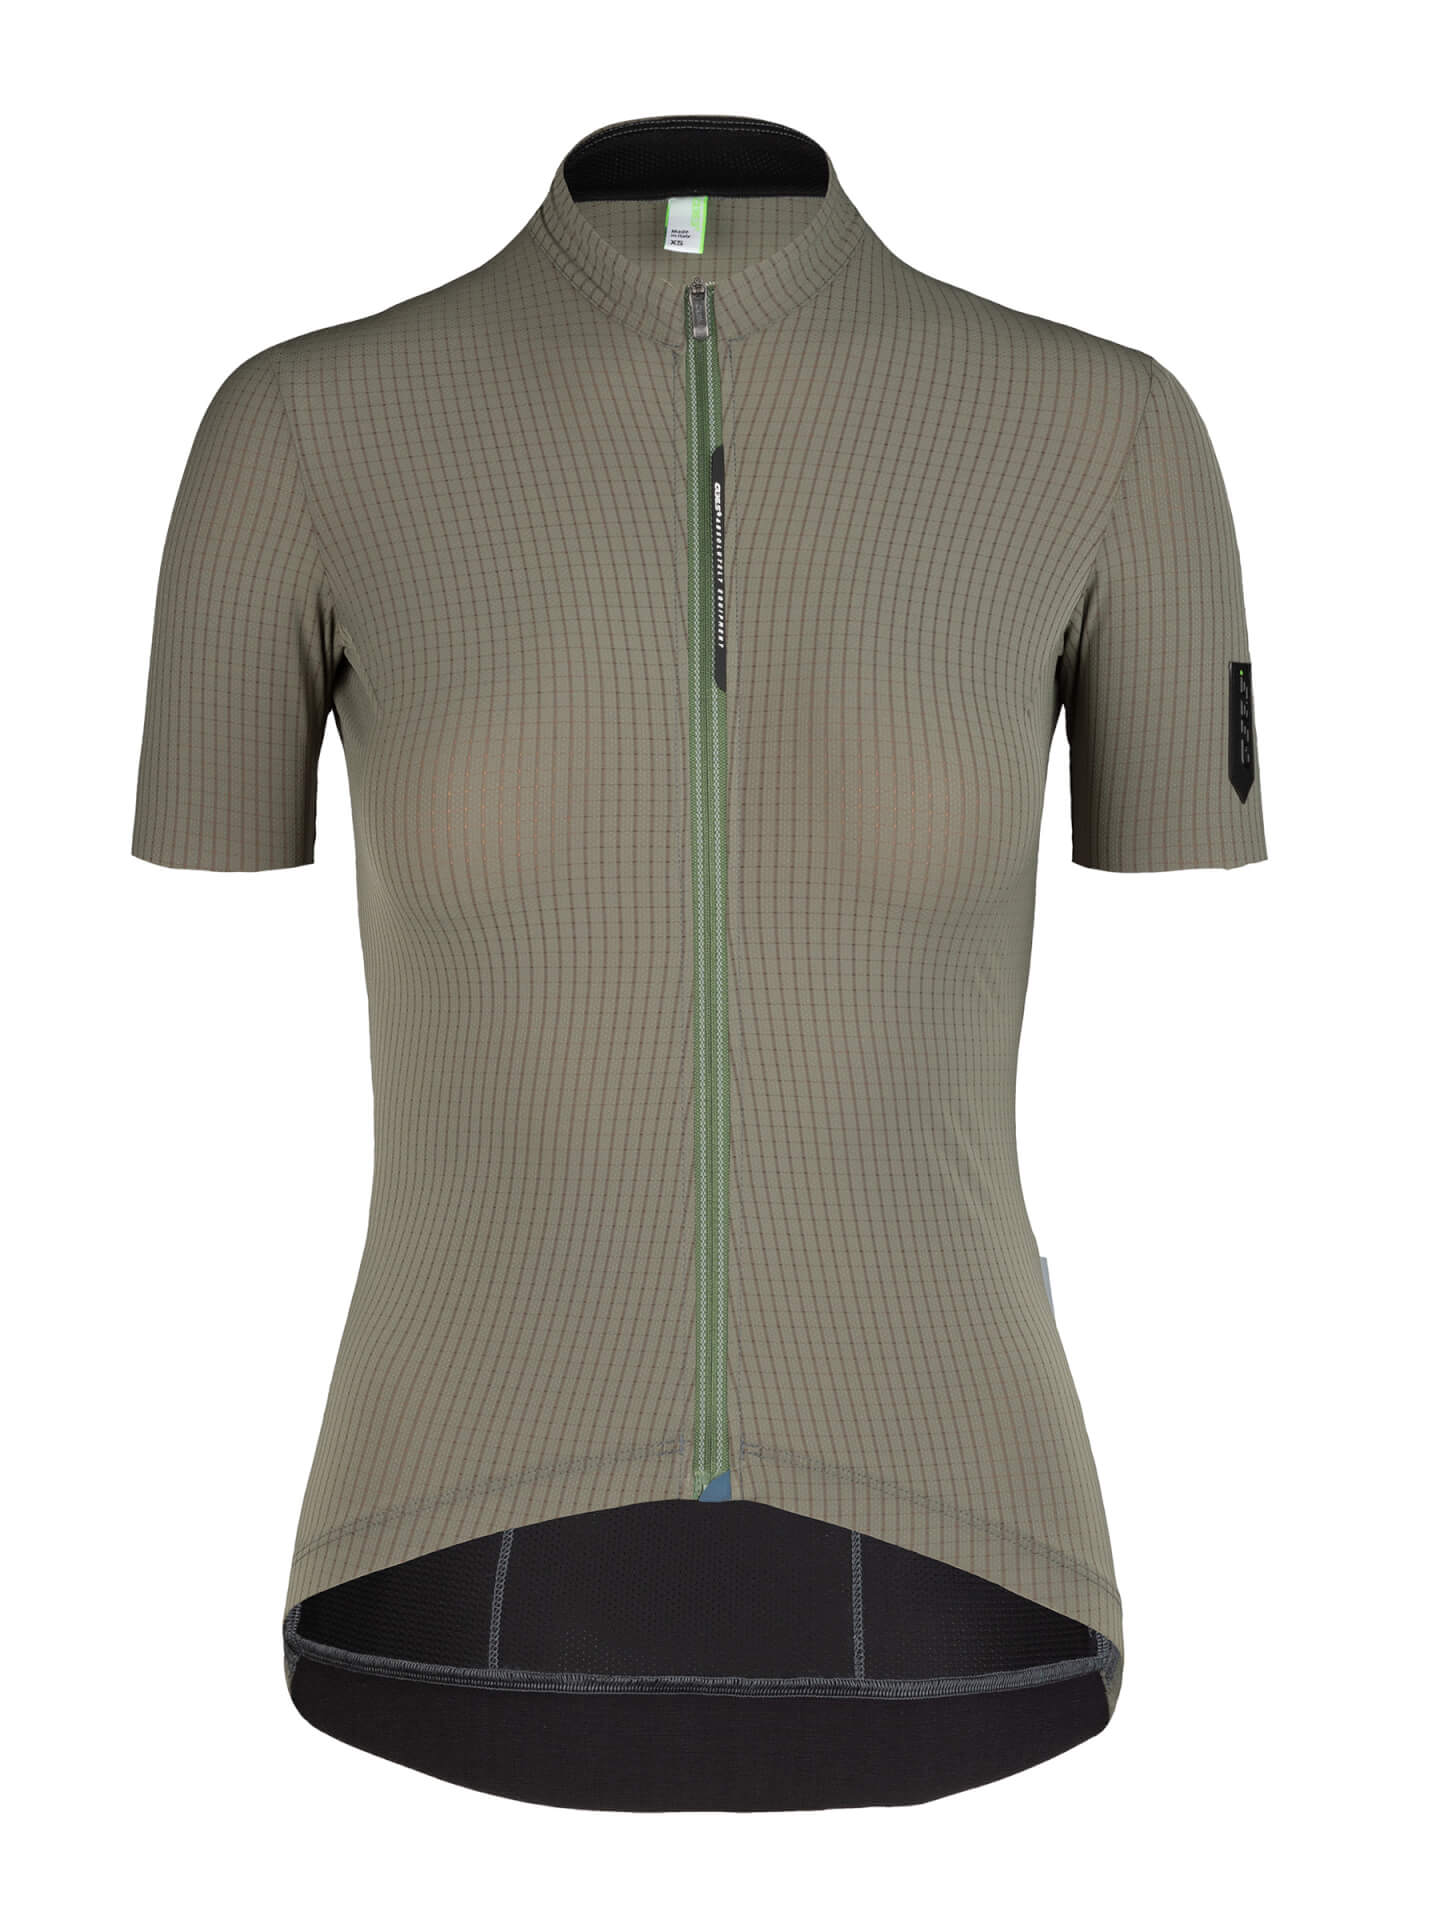 womens cycling jersey short sleeve Pinstripe x olive green Q36.5